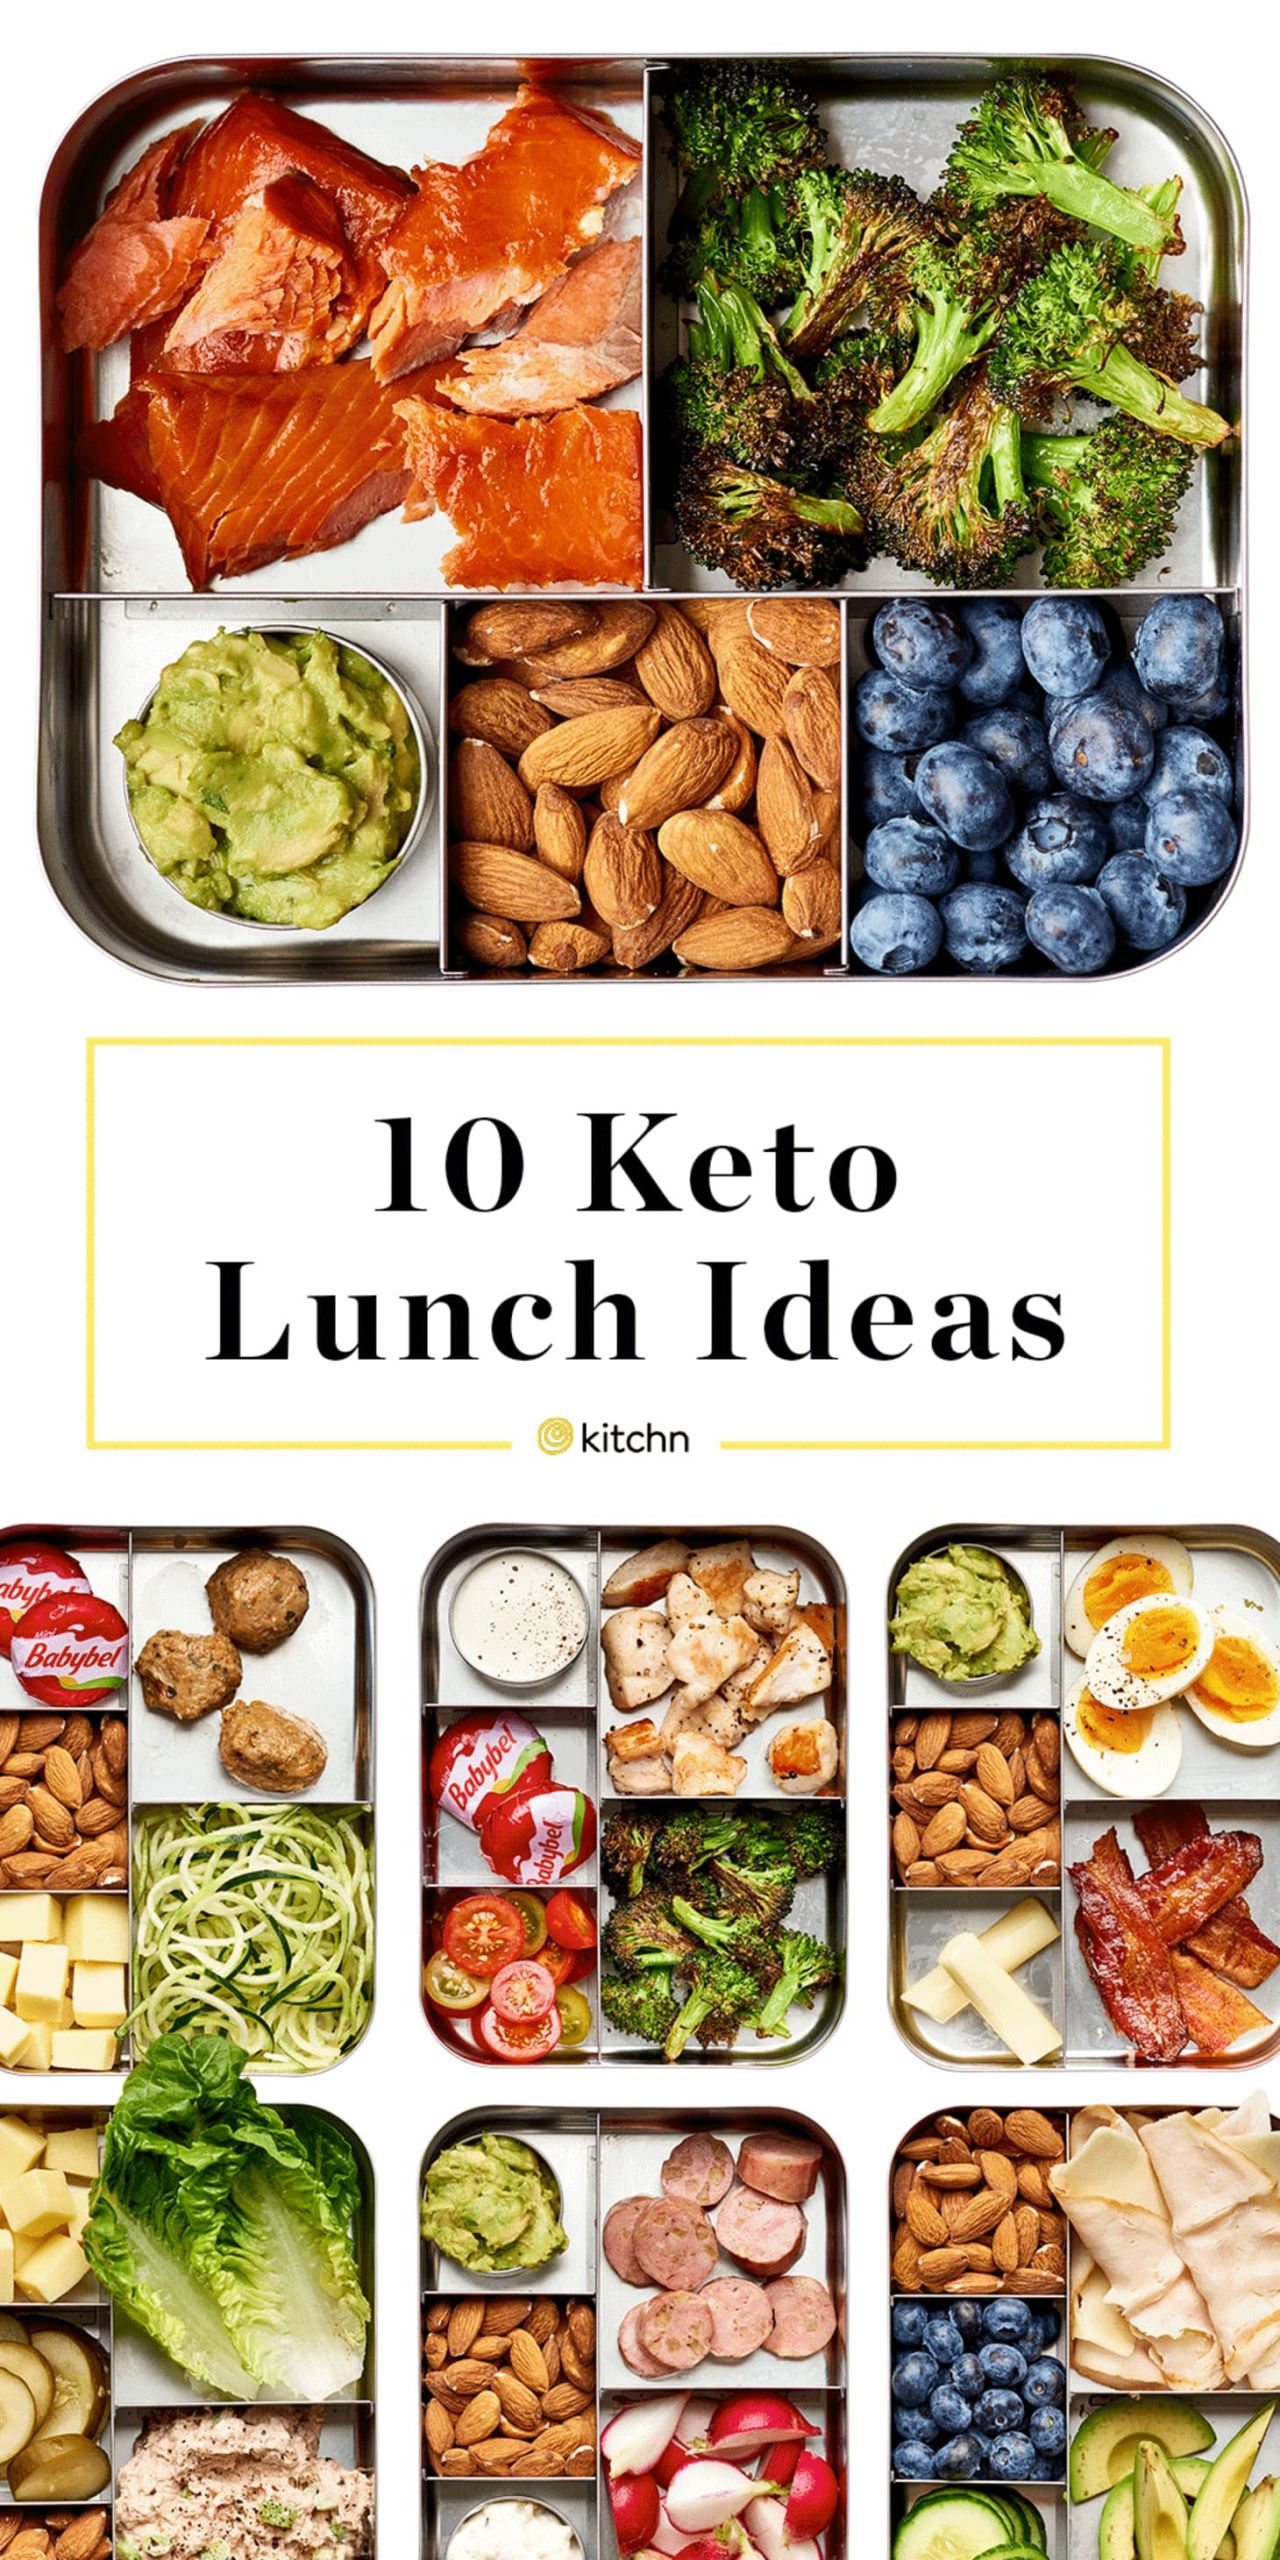 Ketosis Diet Lunch Ideas  10 Easy Keto Lunch Ideas with Net Carb Counts